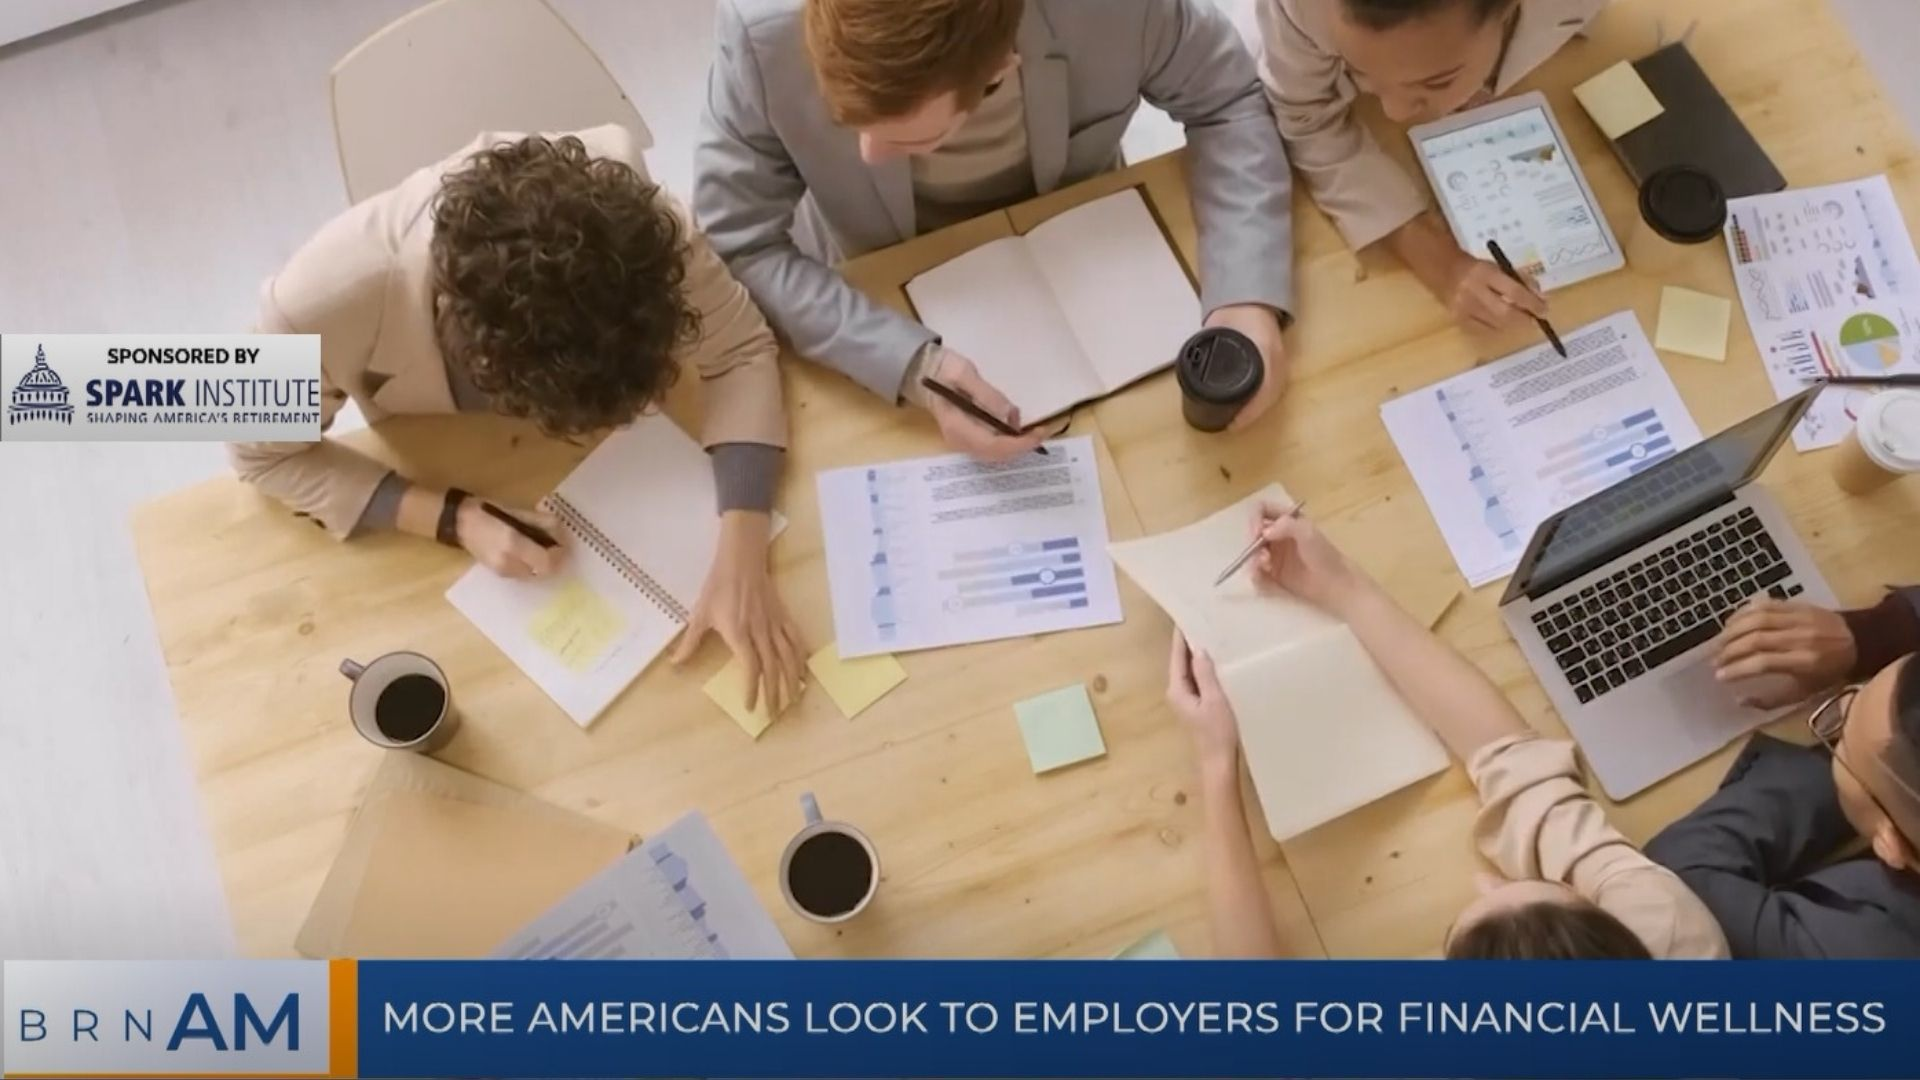 BRN AM | More Americans look to employers for financial wellness